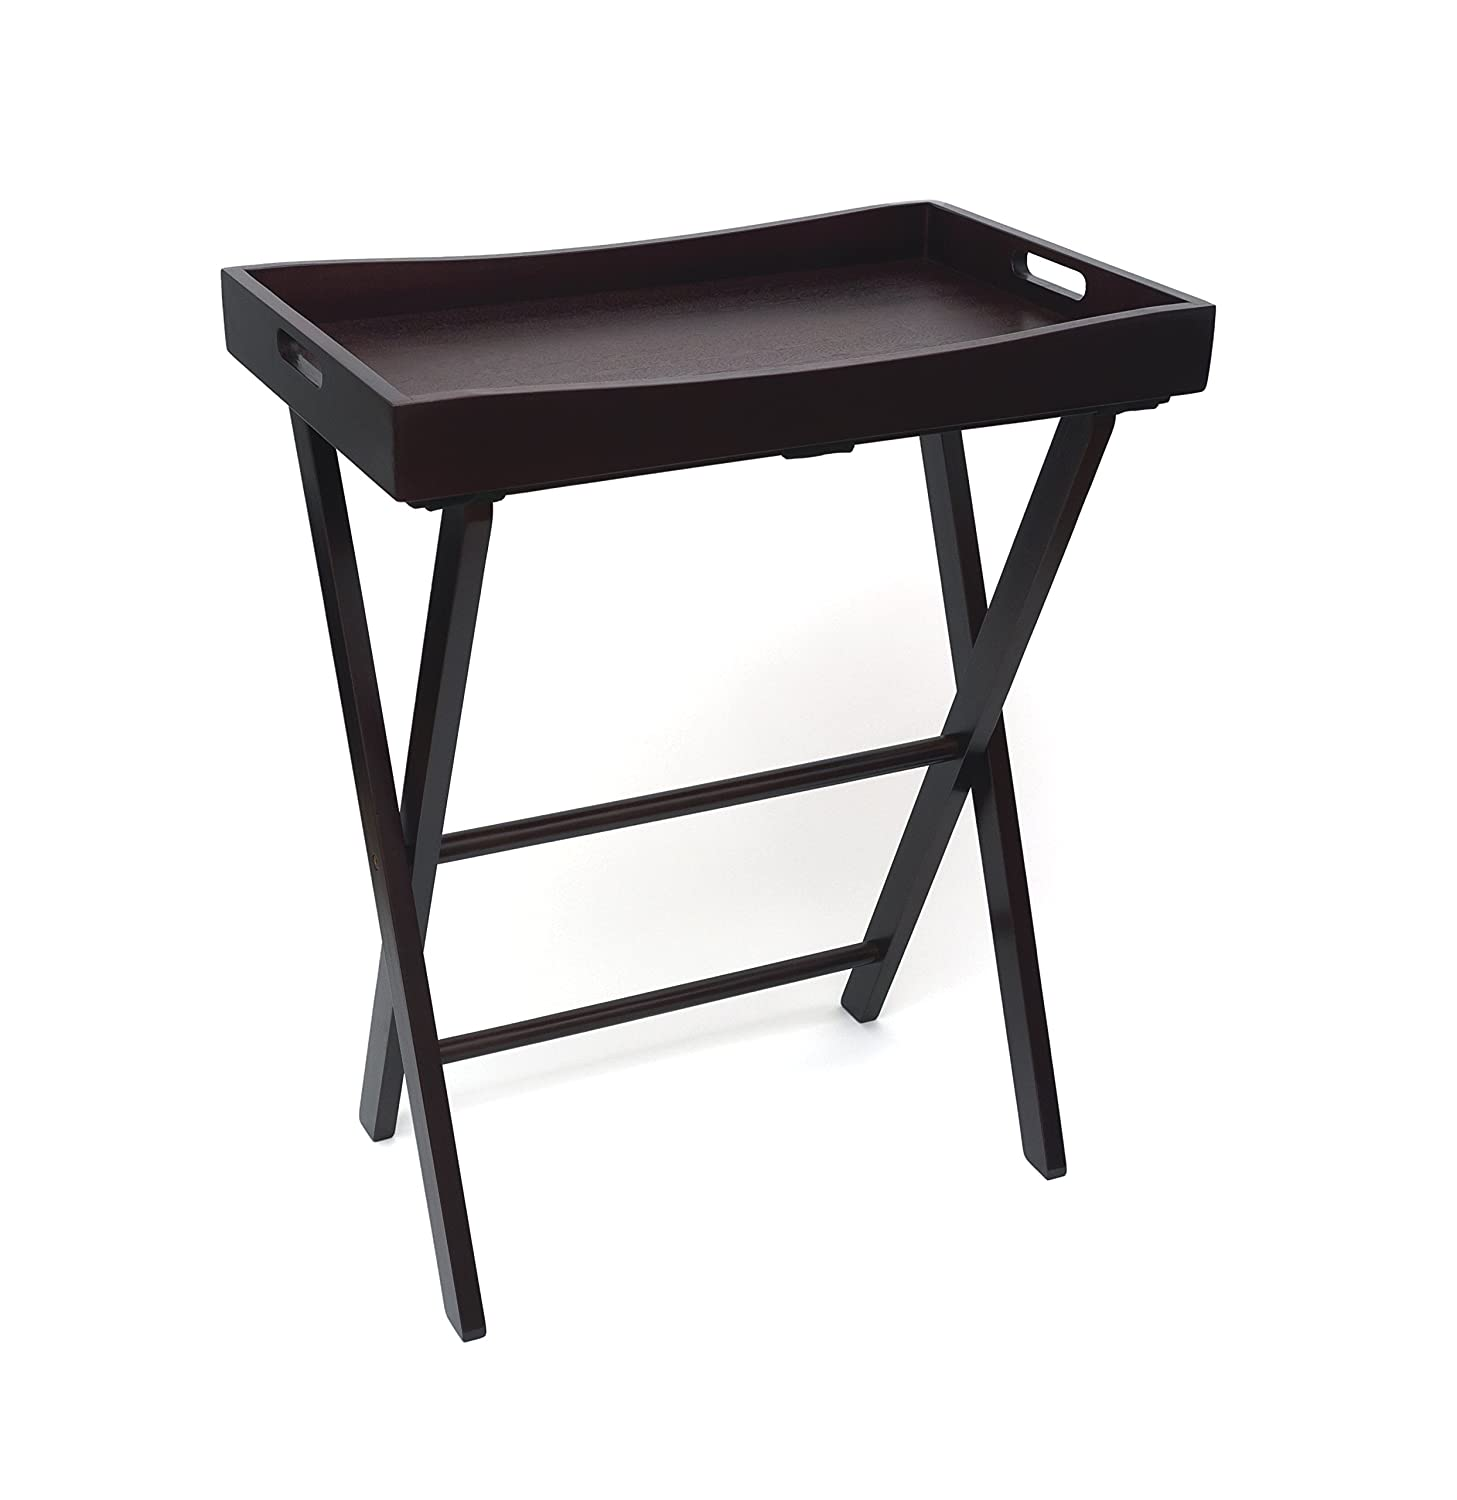 Lipper International 504E Right Height Folding Luggage Rack with Butler Tray, Espresso Finish